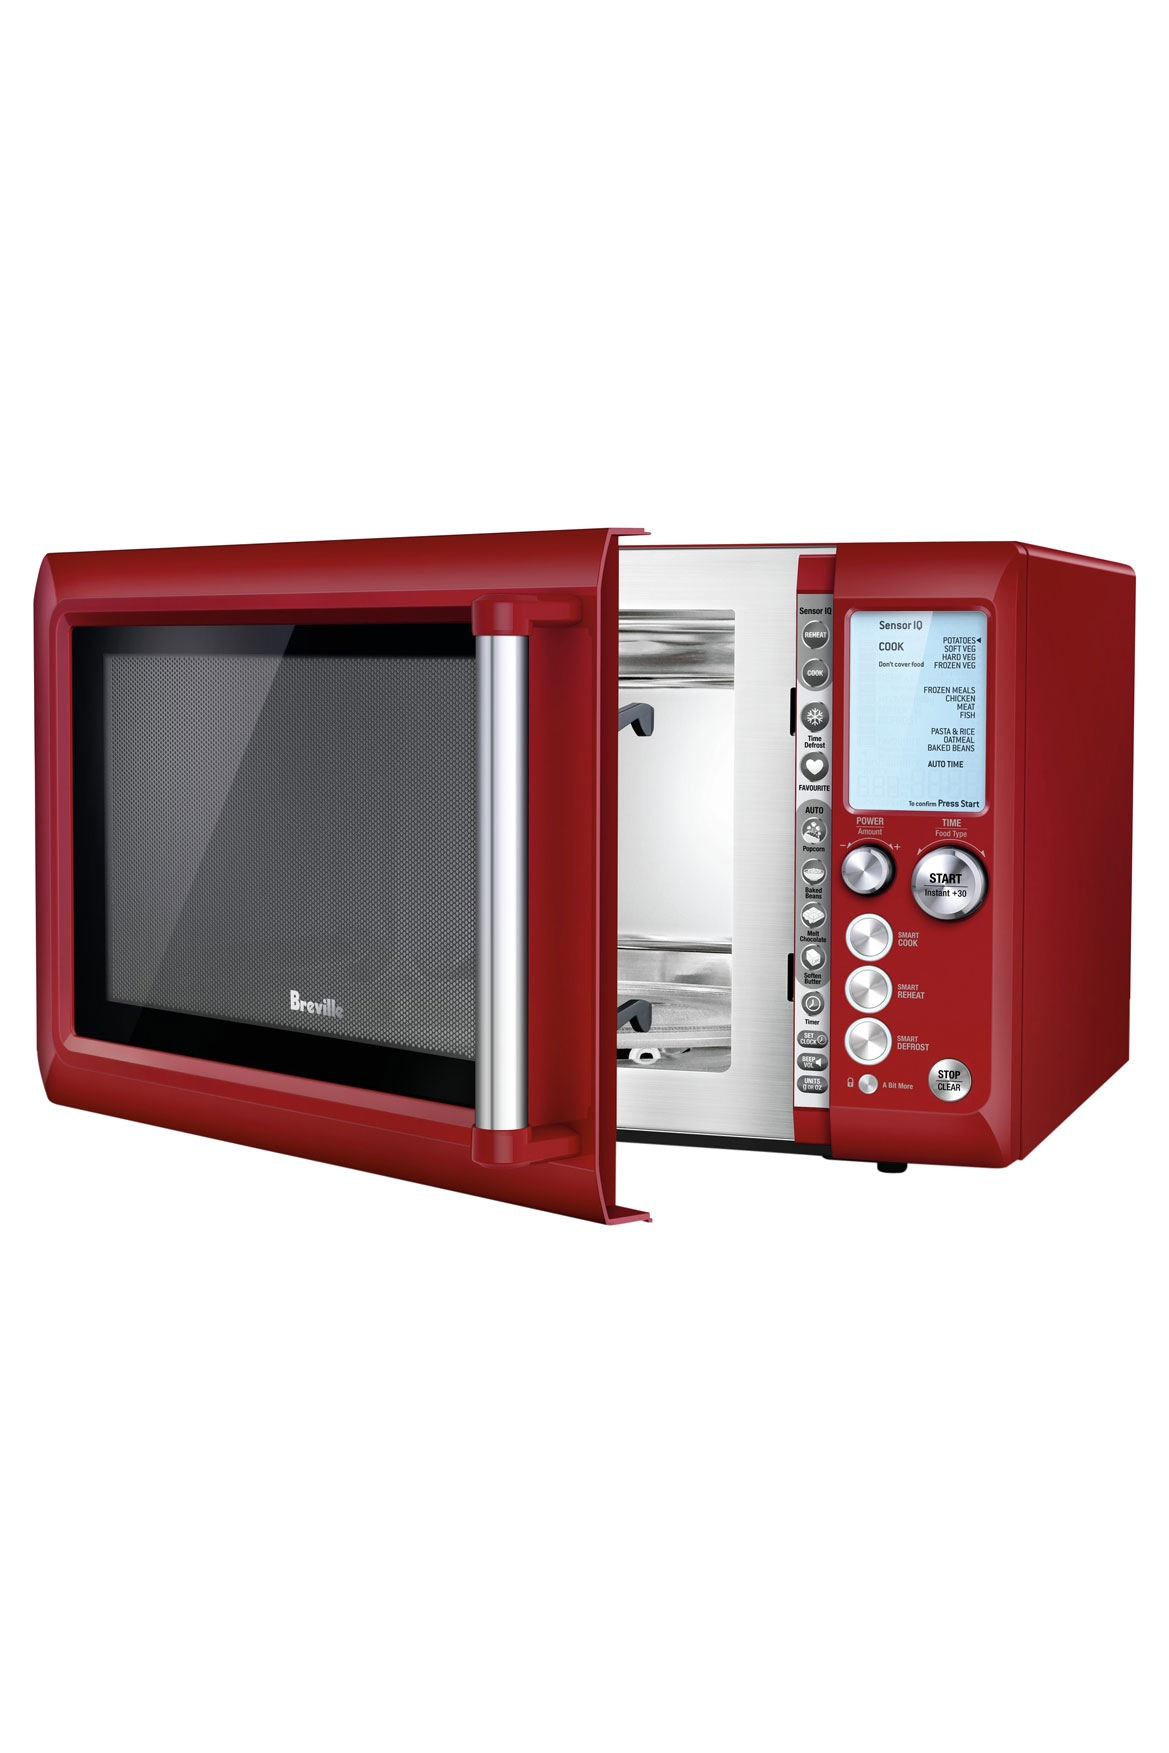 Breville | the Quick Touch Microwave BMO735CRN | Myer Online